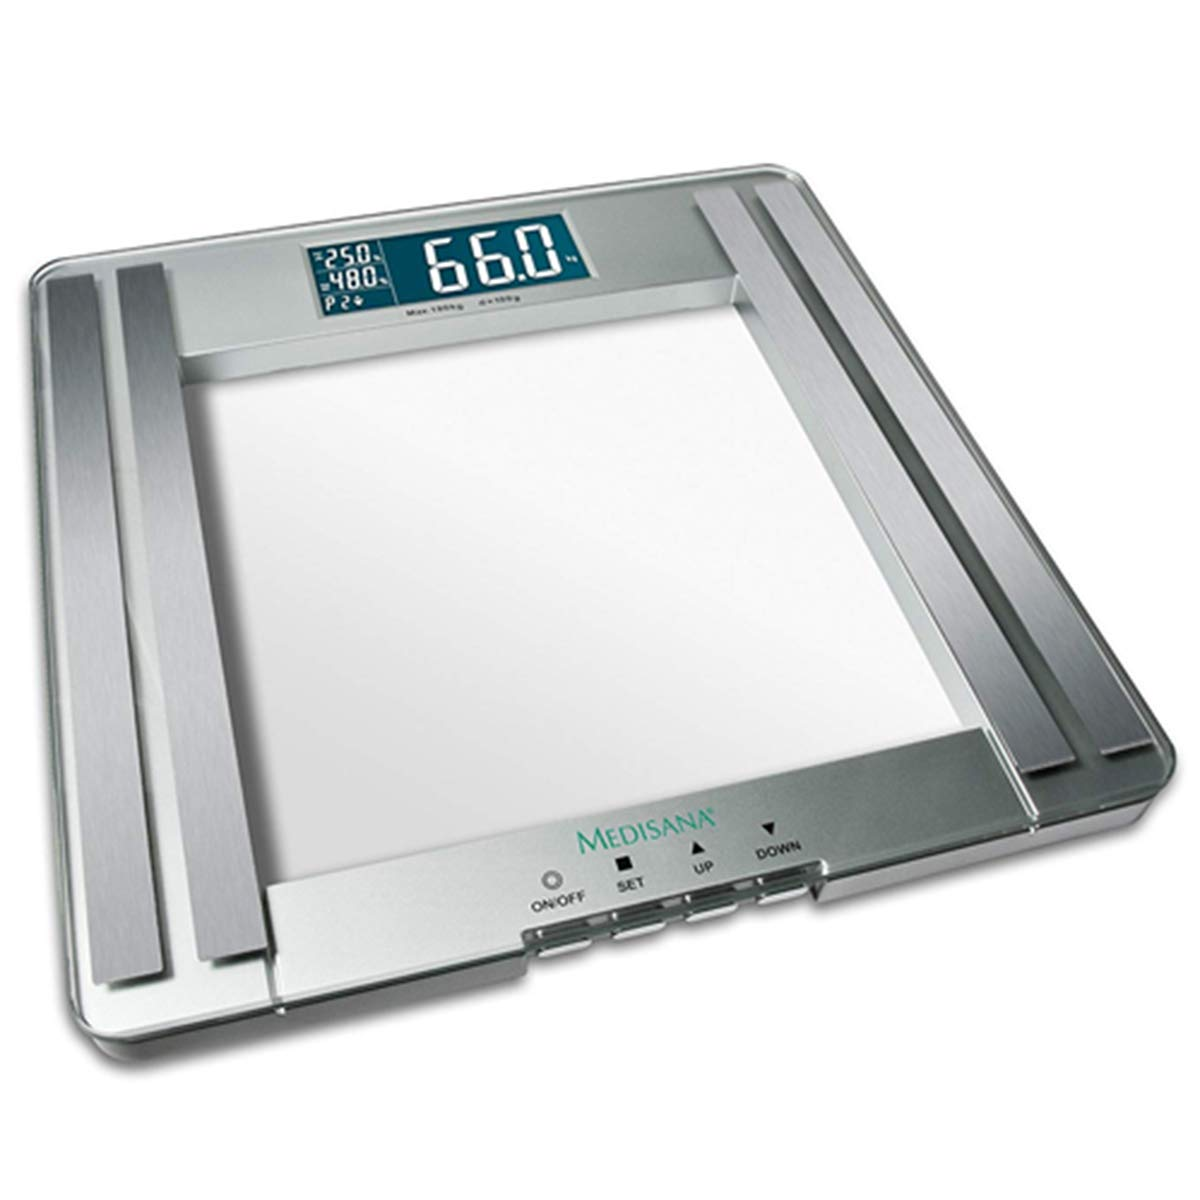 Amazon.com: Medisana PSM Body Composition Analyser Scales: Health & Personal Care